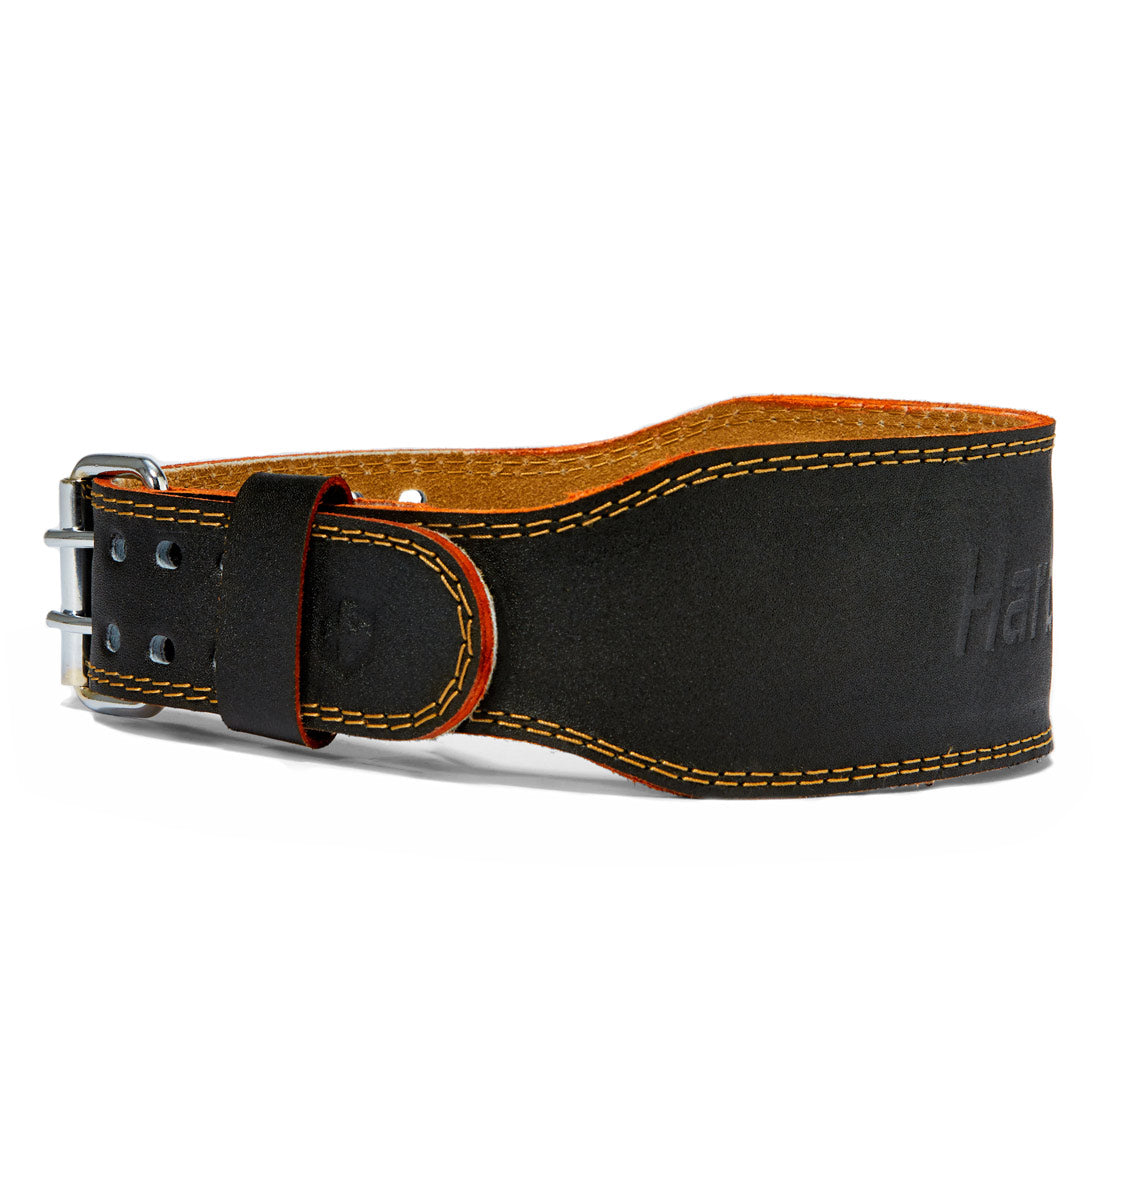 HAR284 Harbinger 4 inch Leather Weight Lifting Belt Side